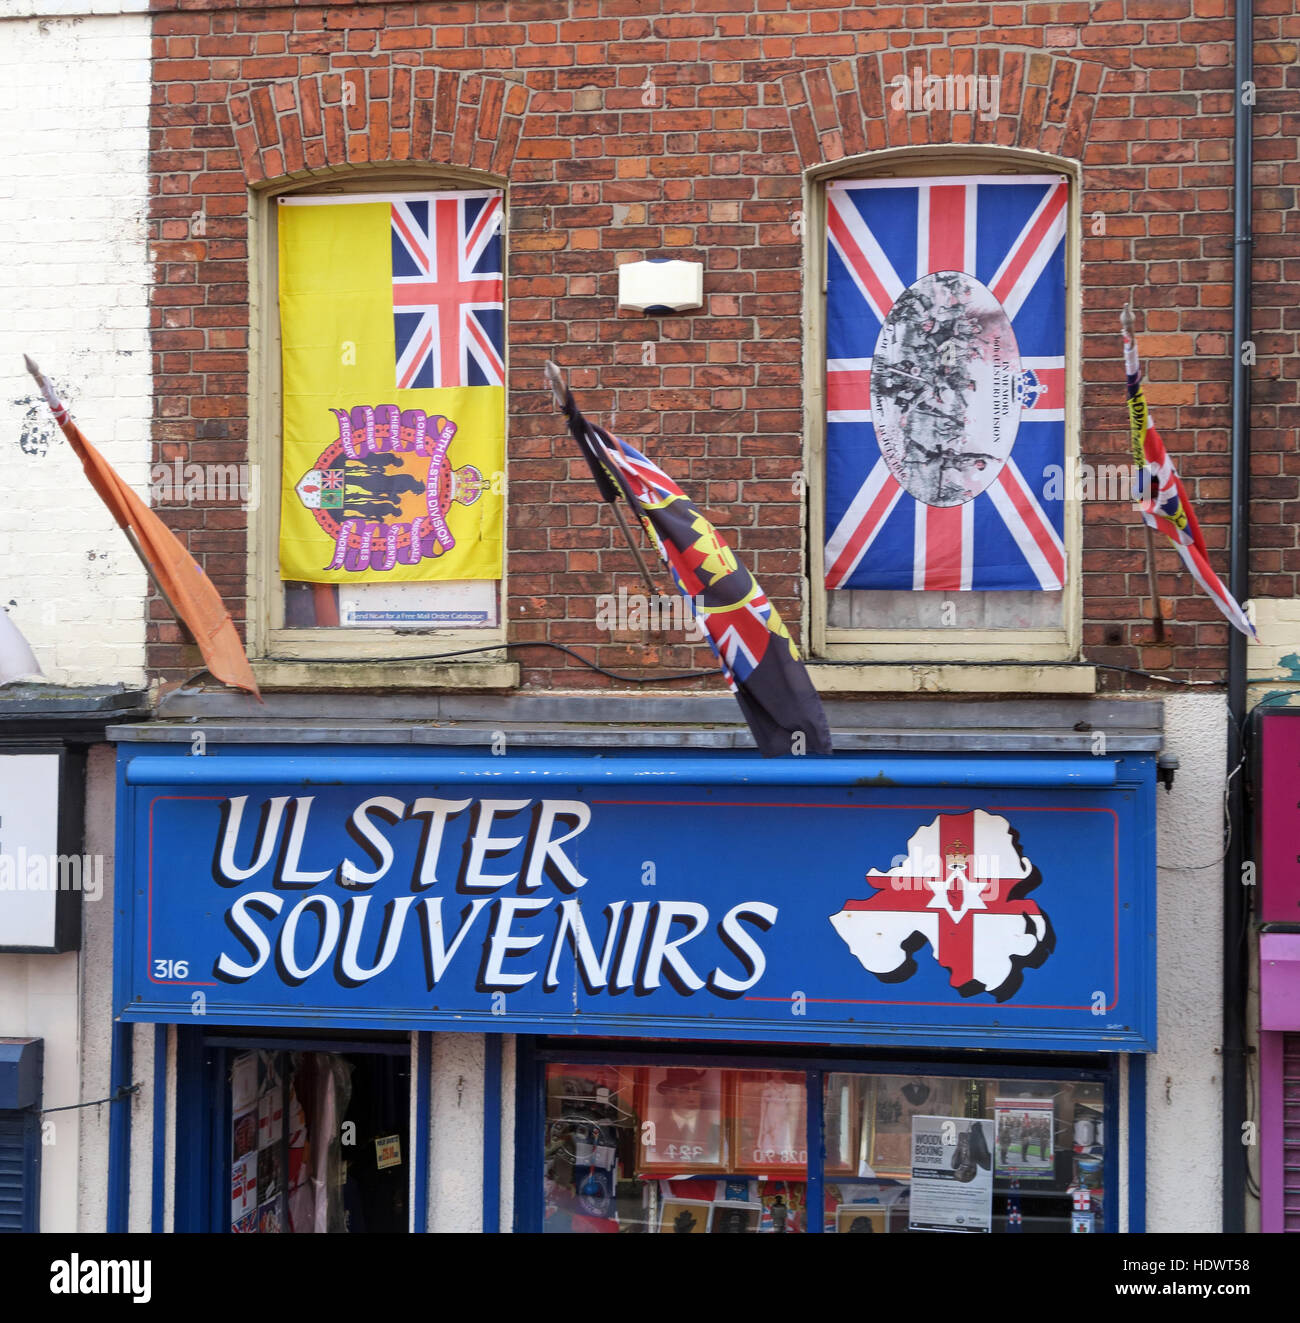 Ulster Souvenirs, Shankill Road West Belfast,Northern Ireland,UK - Stock Image